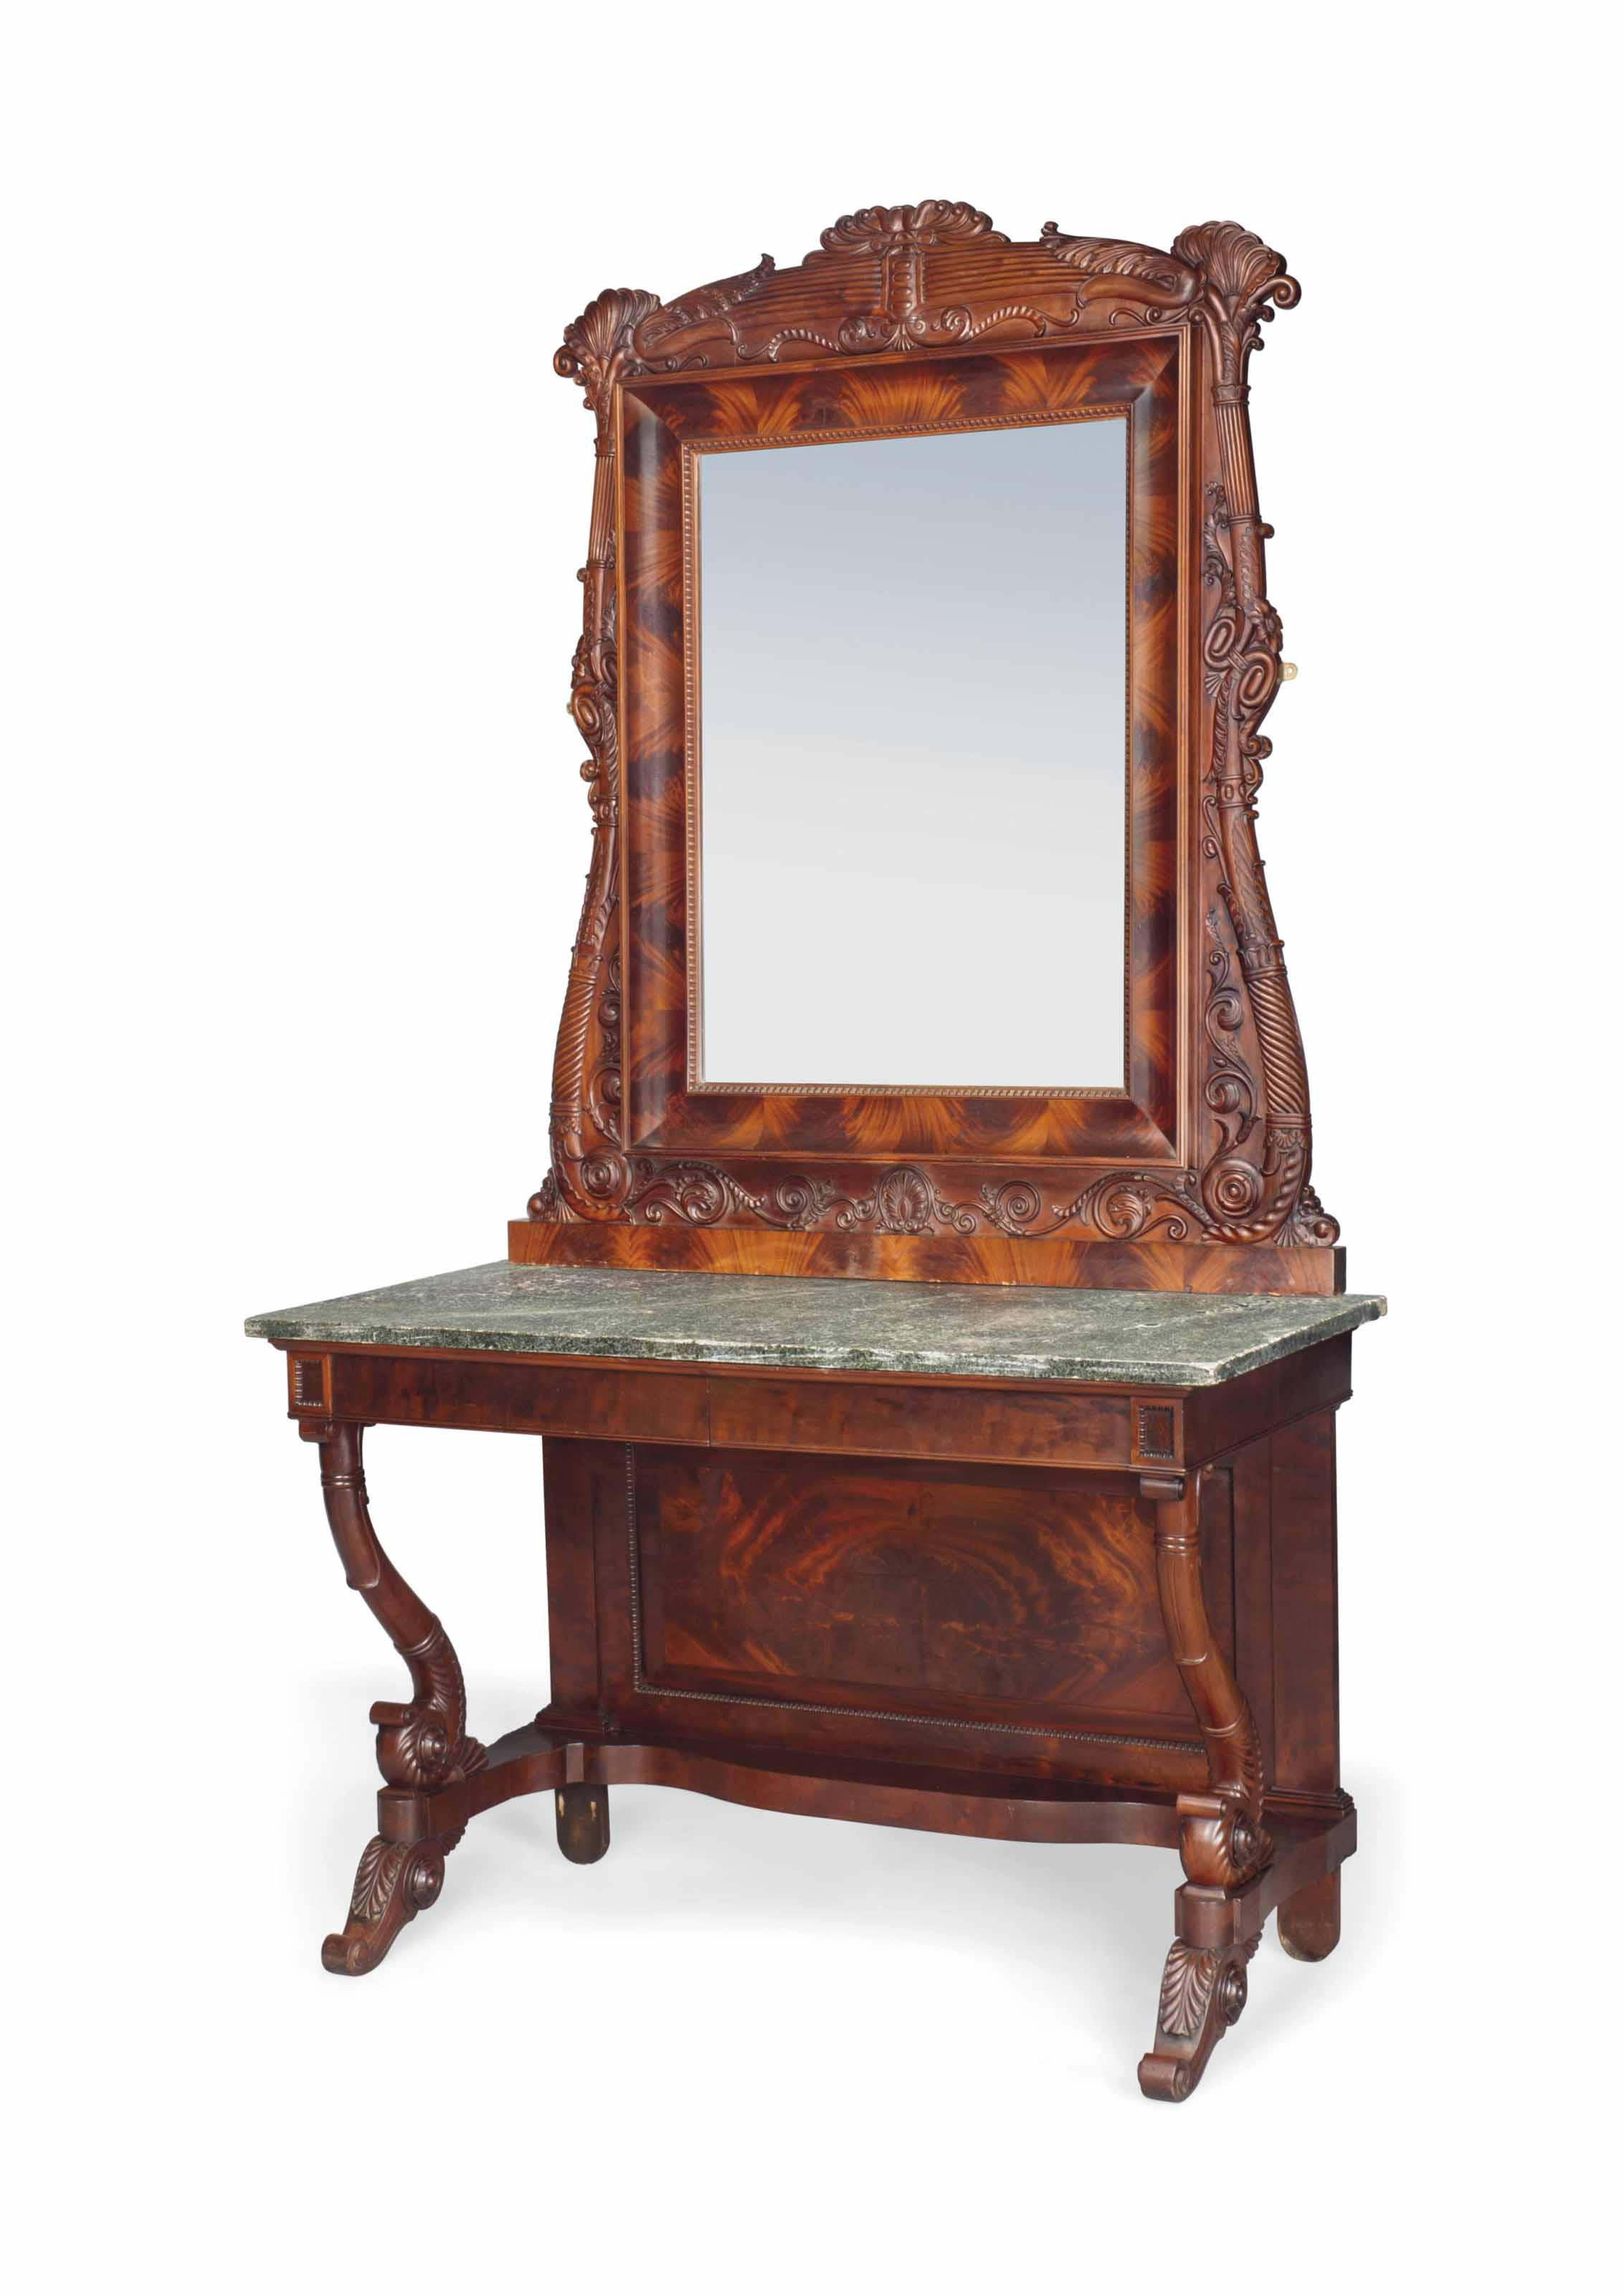 A NORTH ITALIAN MAHOGANY CONSOLE TABLE AND ENSUITE MIRROR